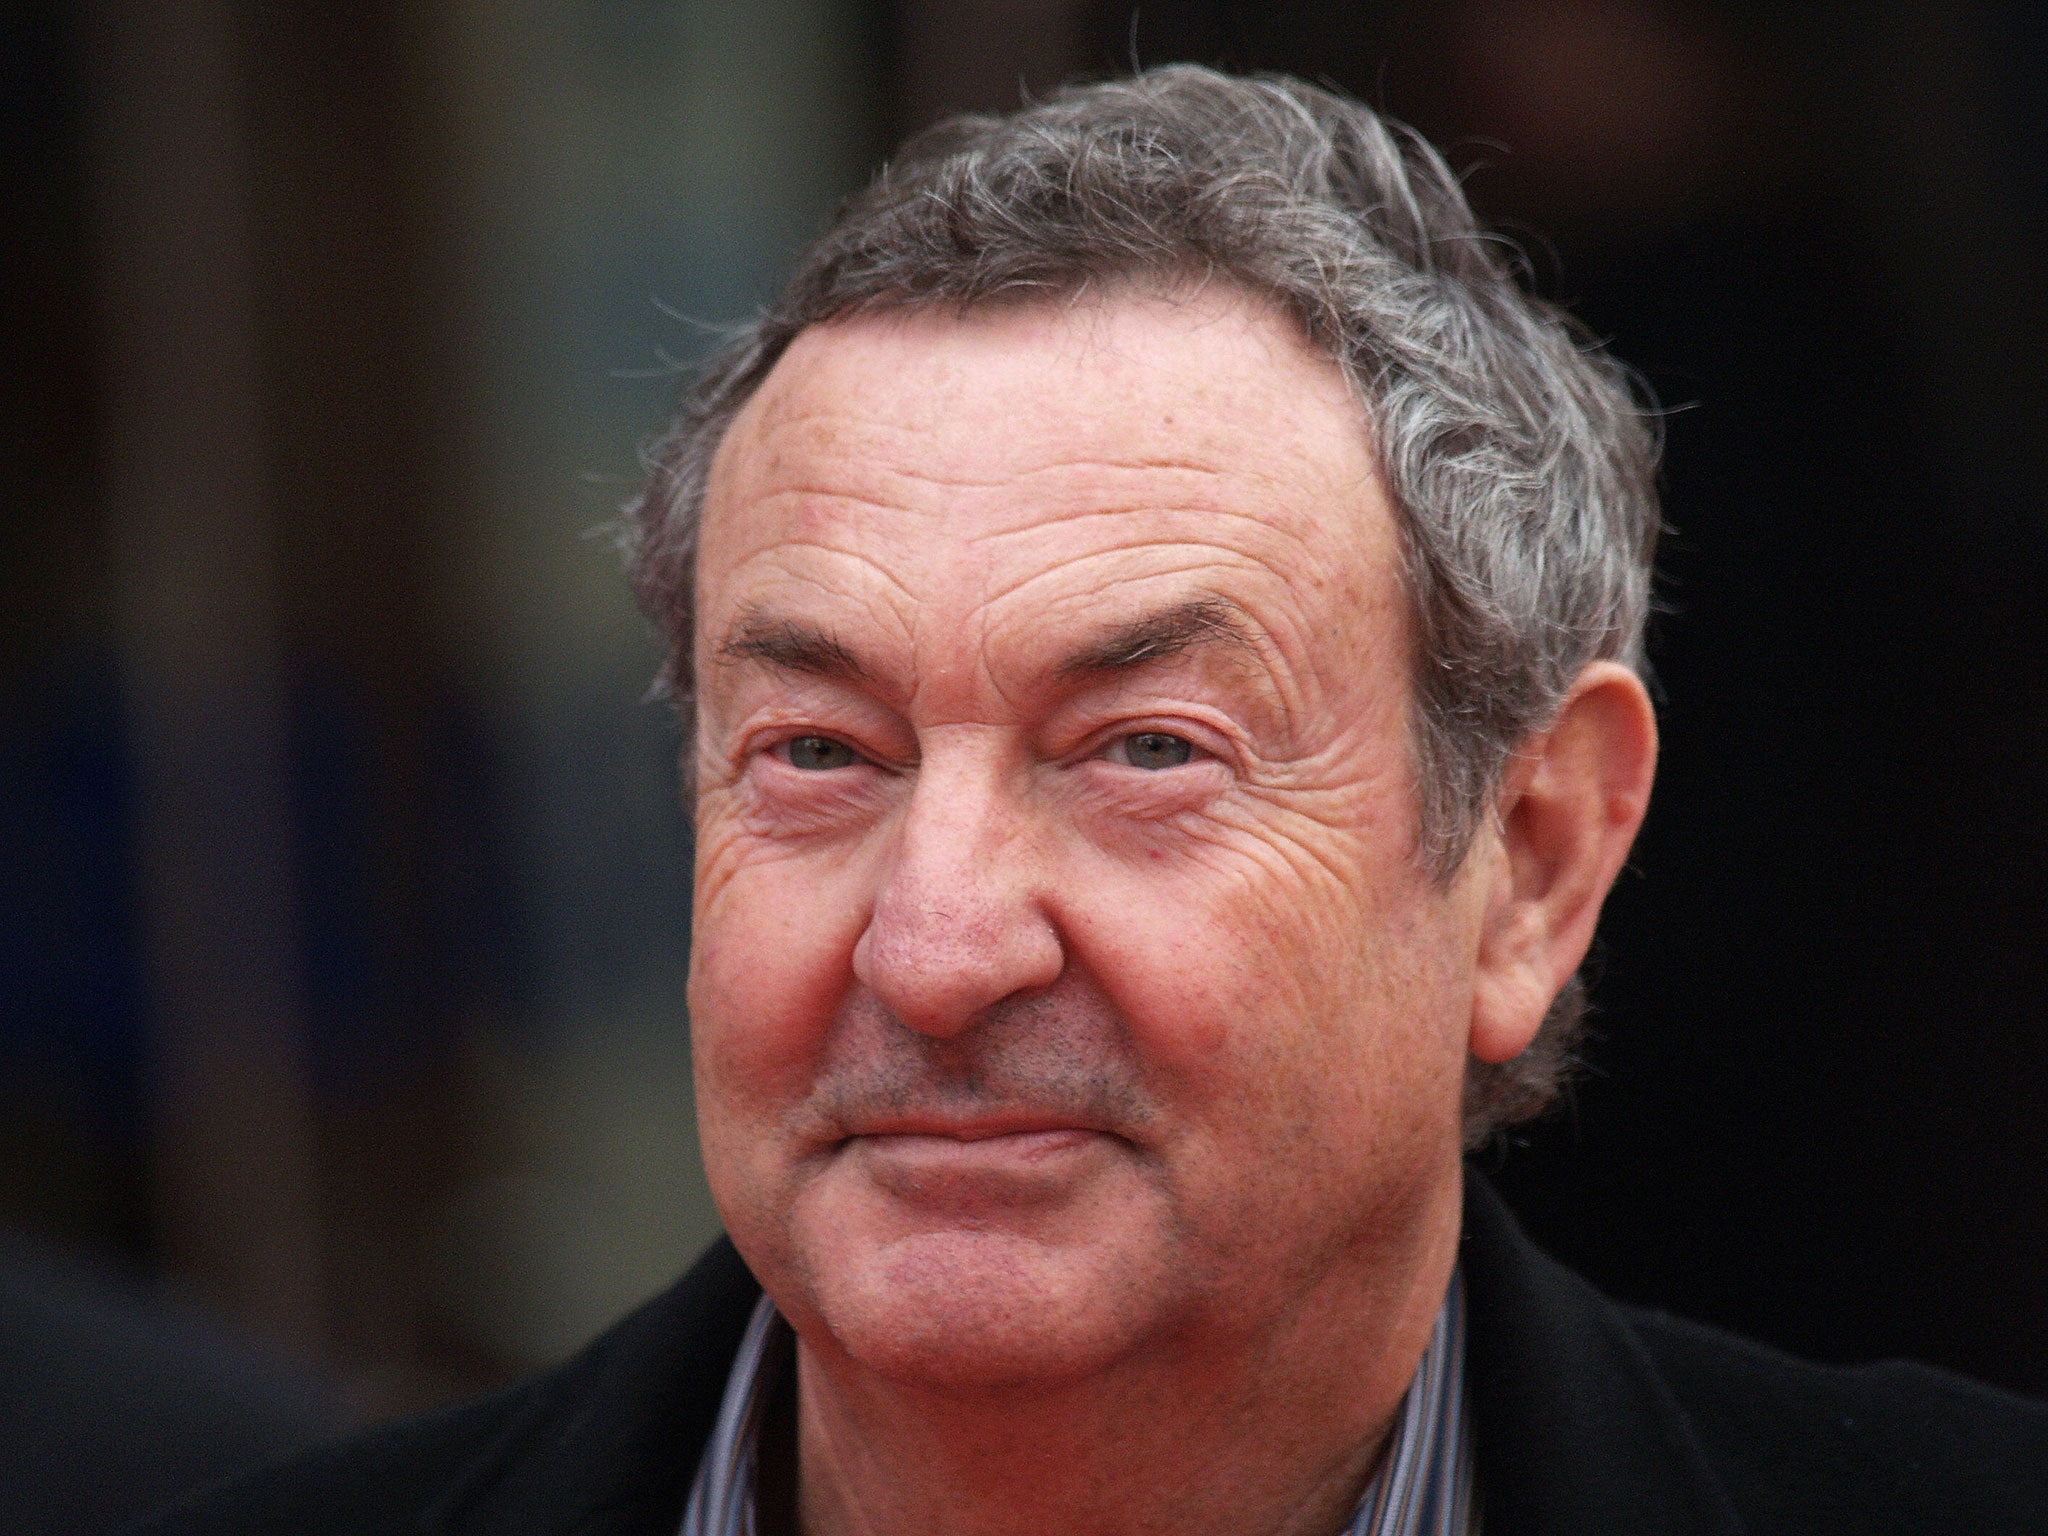 Tips: Nick Mason, 2018s alternative hair style of the cool happy  writer